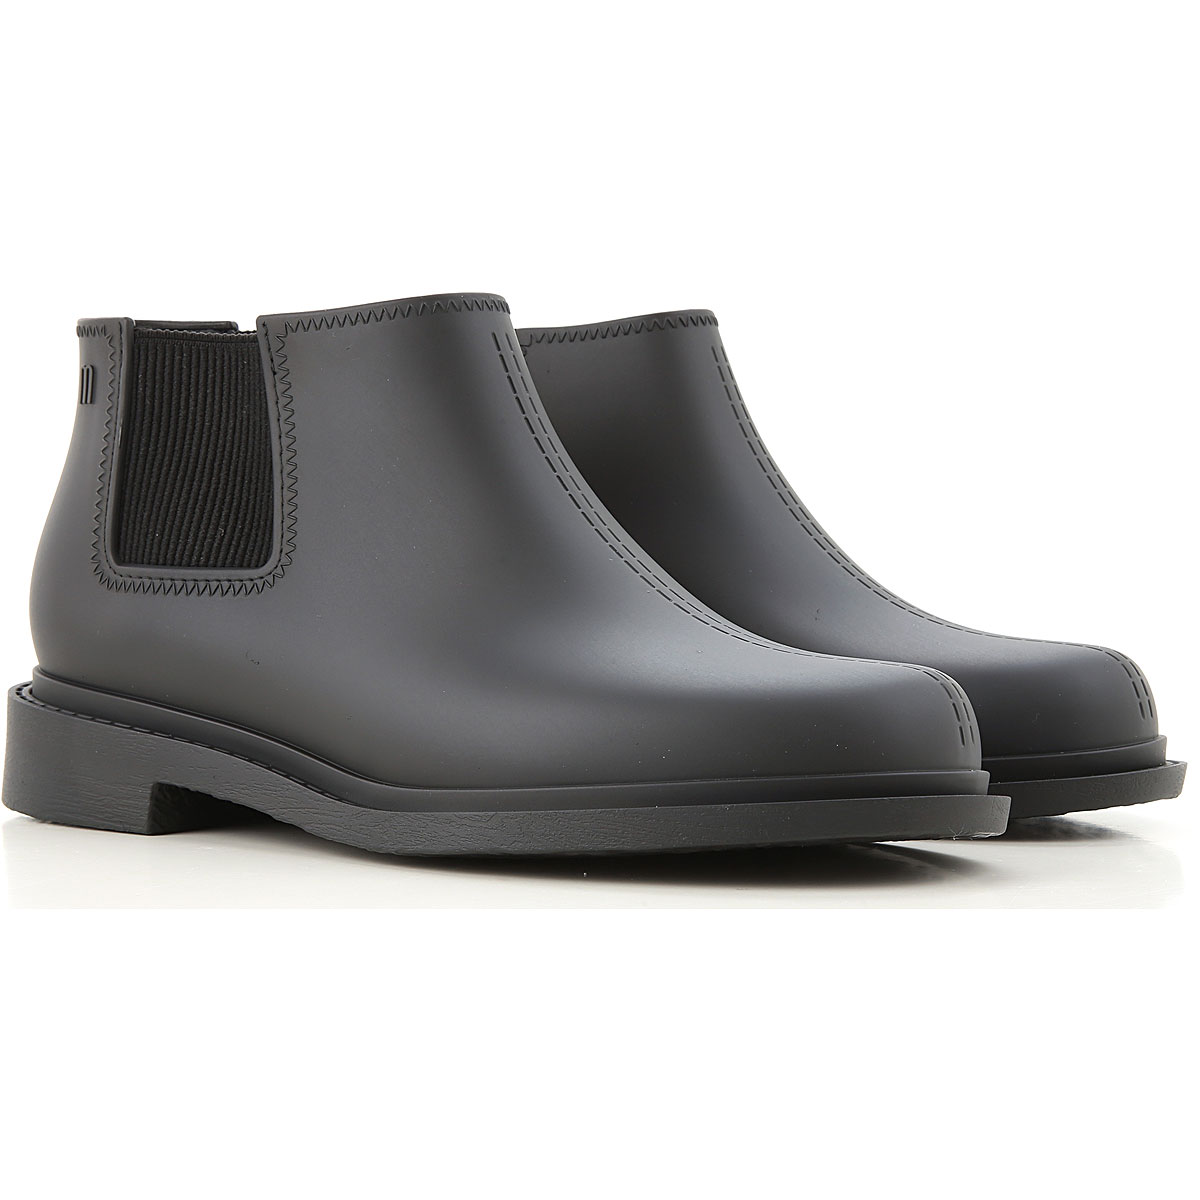 Melissa Boots for Women, Booties On Sale, Black, PVC, 2019, USA 5 - EUR 35/36 USA 6 - EUR 37 USA 7 - EUR 38 USA 8 - EUR 39 USA 9 - EUR 40 USA 10 - EUR